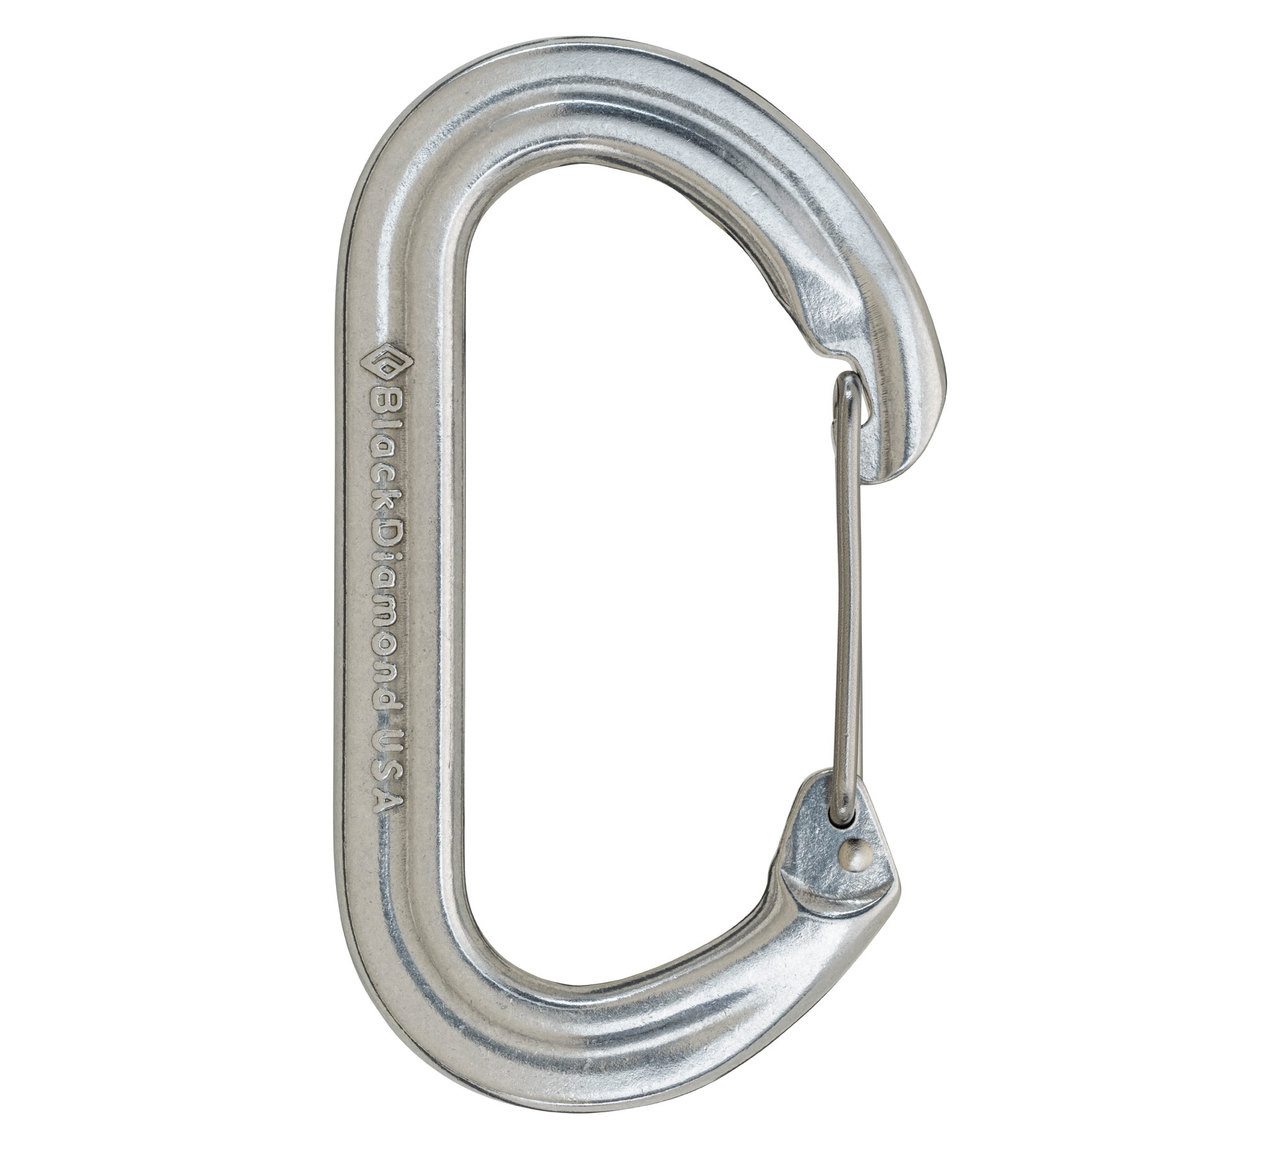 Black Diamond OvalWire Carabiner